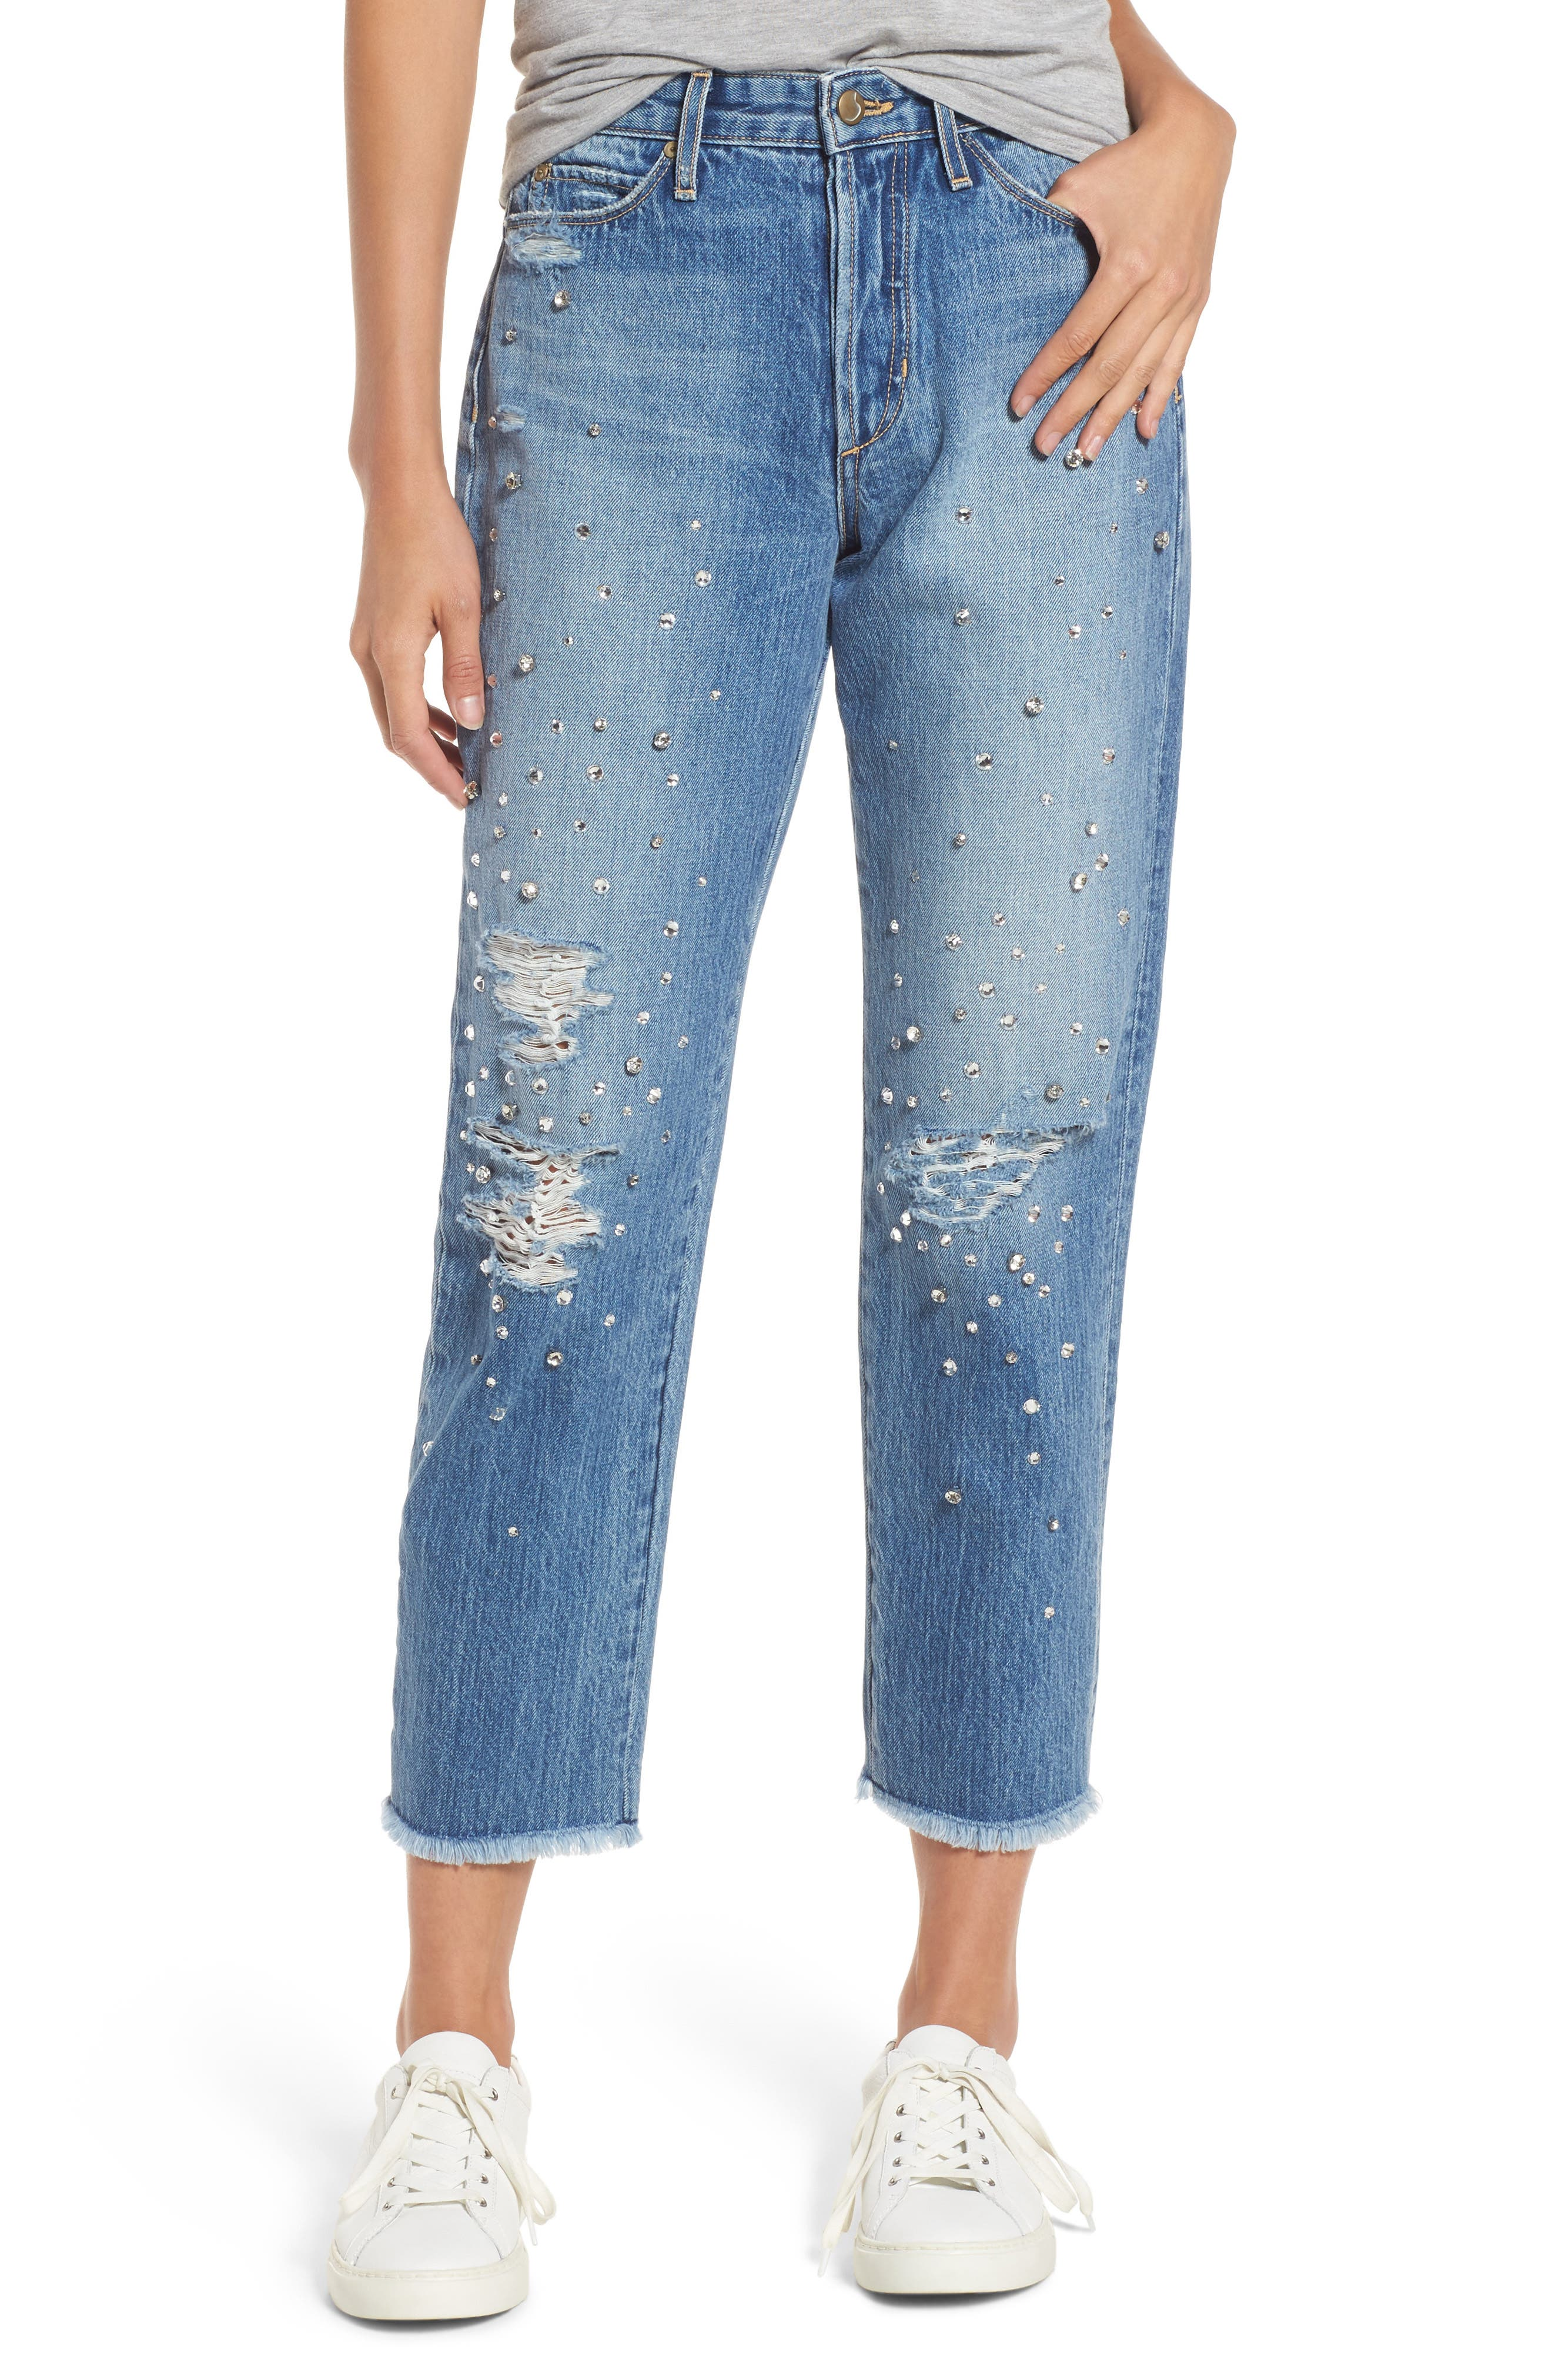 Alternate Image 1 Selected - Joe's Jeans Smith Rhinestone Crop Boyfriend Jeans (Cyndi)